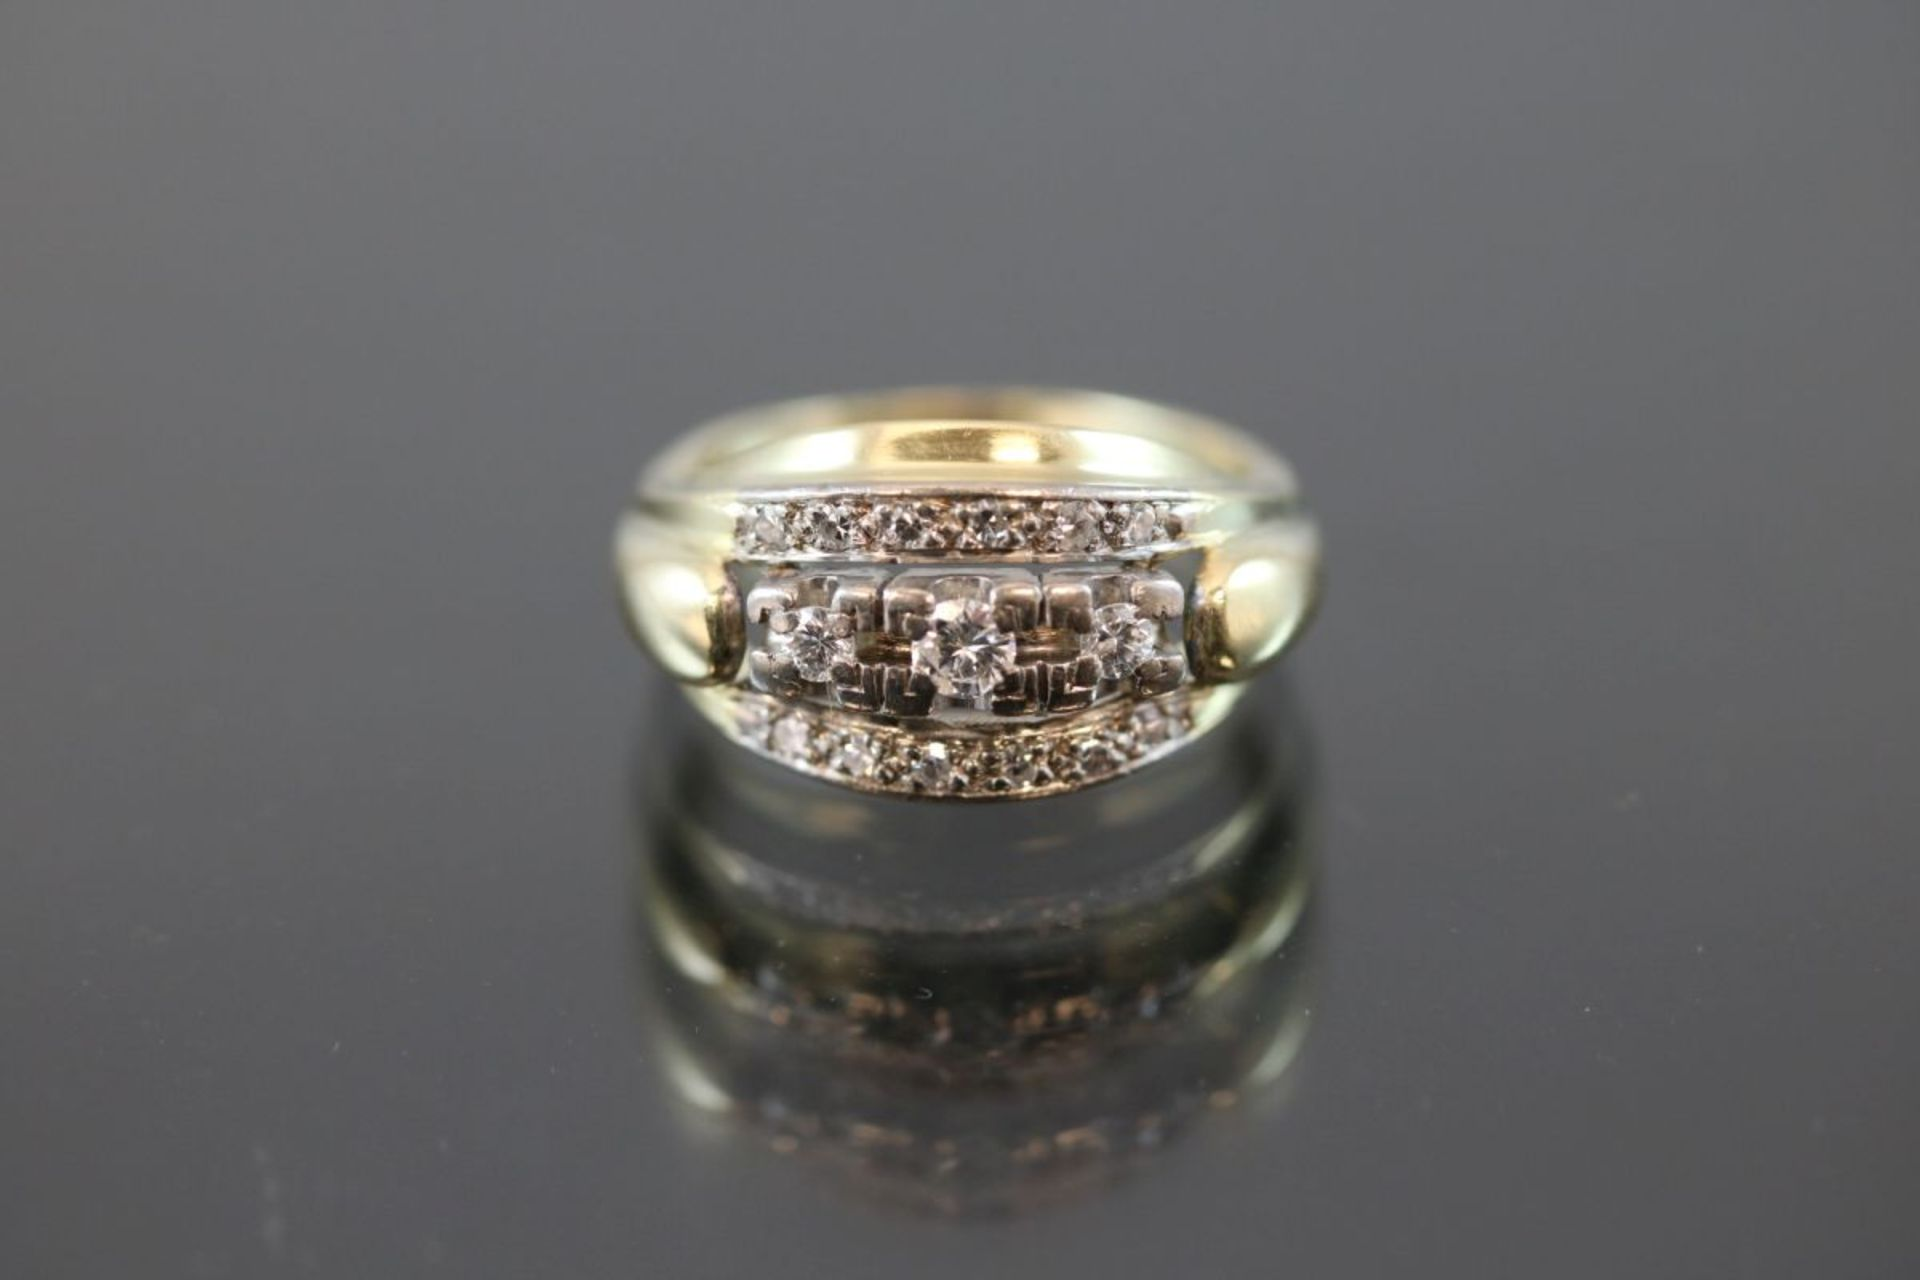 Brillant-Diamant-Ring, 585 Gelbgold4,9 Gramm Brillanten/Diamanten, ca. 0,30 ct., w/si. Ringgröße: